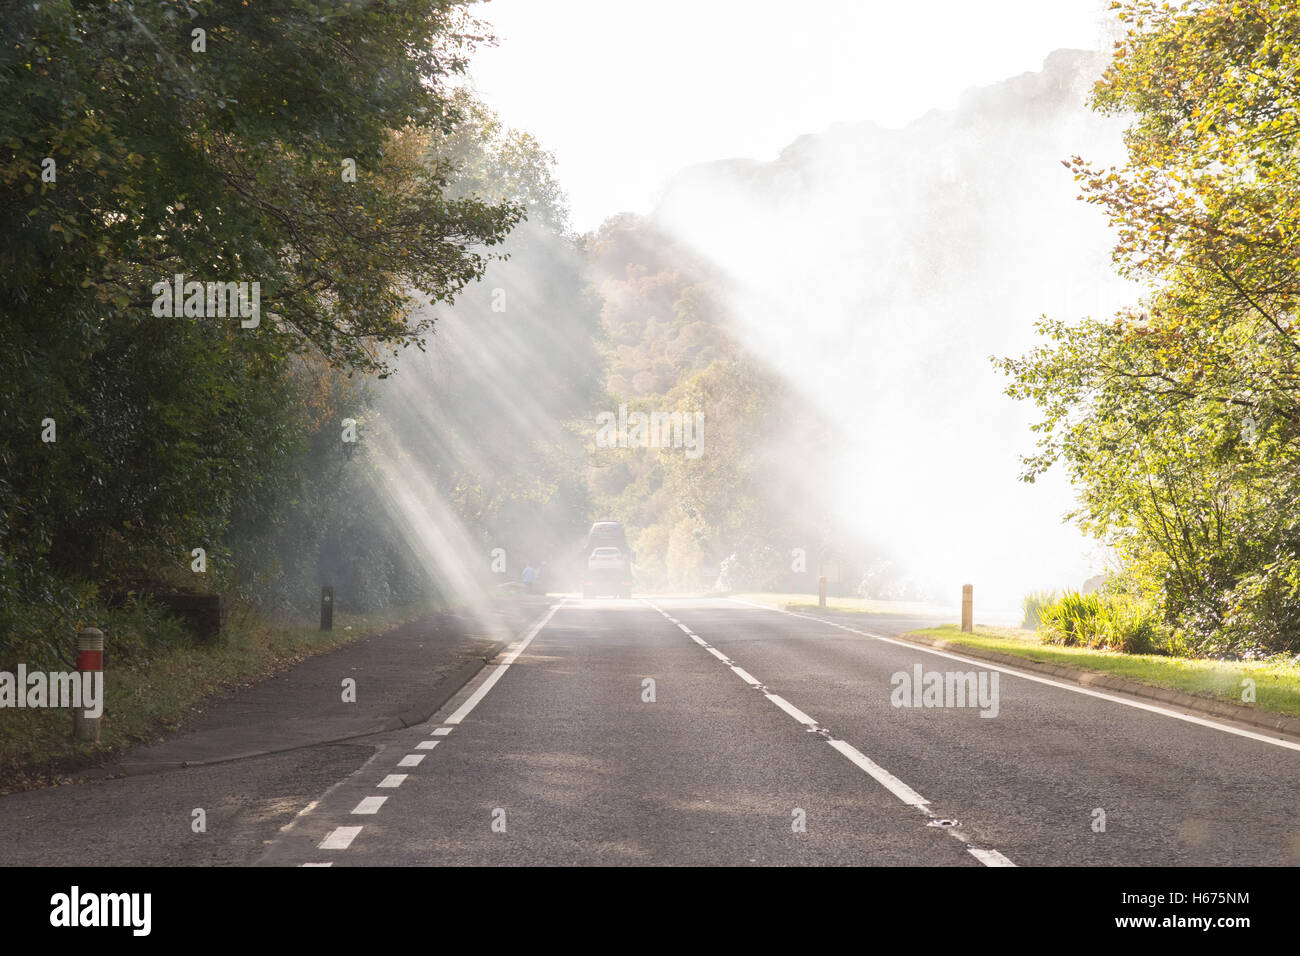 smoke from bonfire burning close to main road drifting across the road and reducing visibility - Stock Image